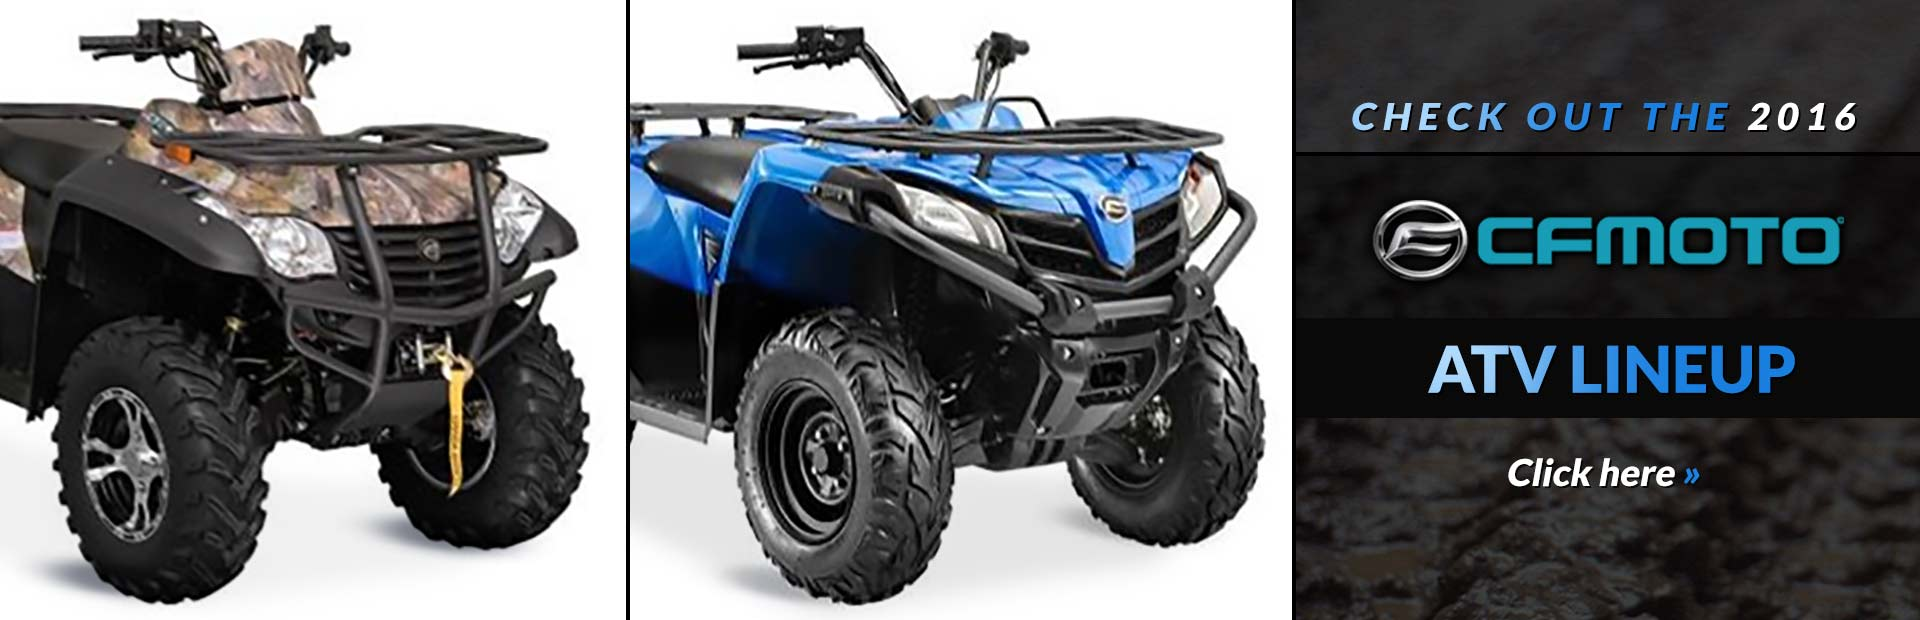 Click here to check out the 2016 CFMOTO ATV lineup!